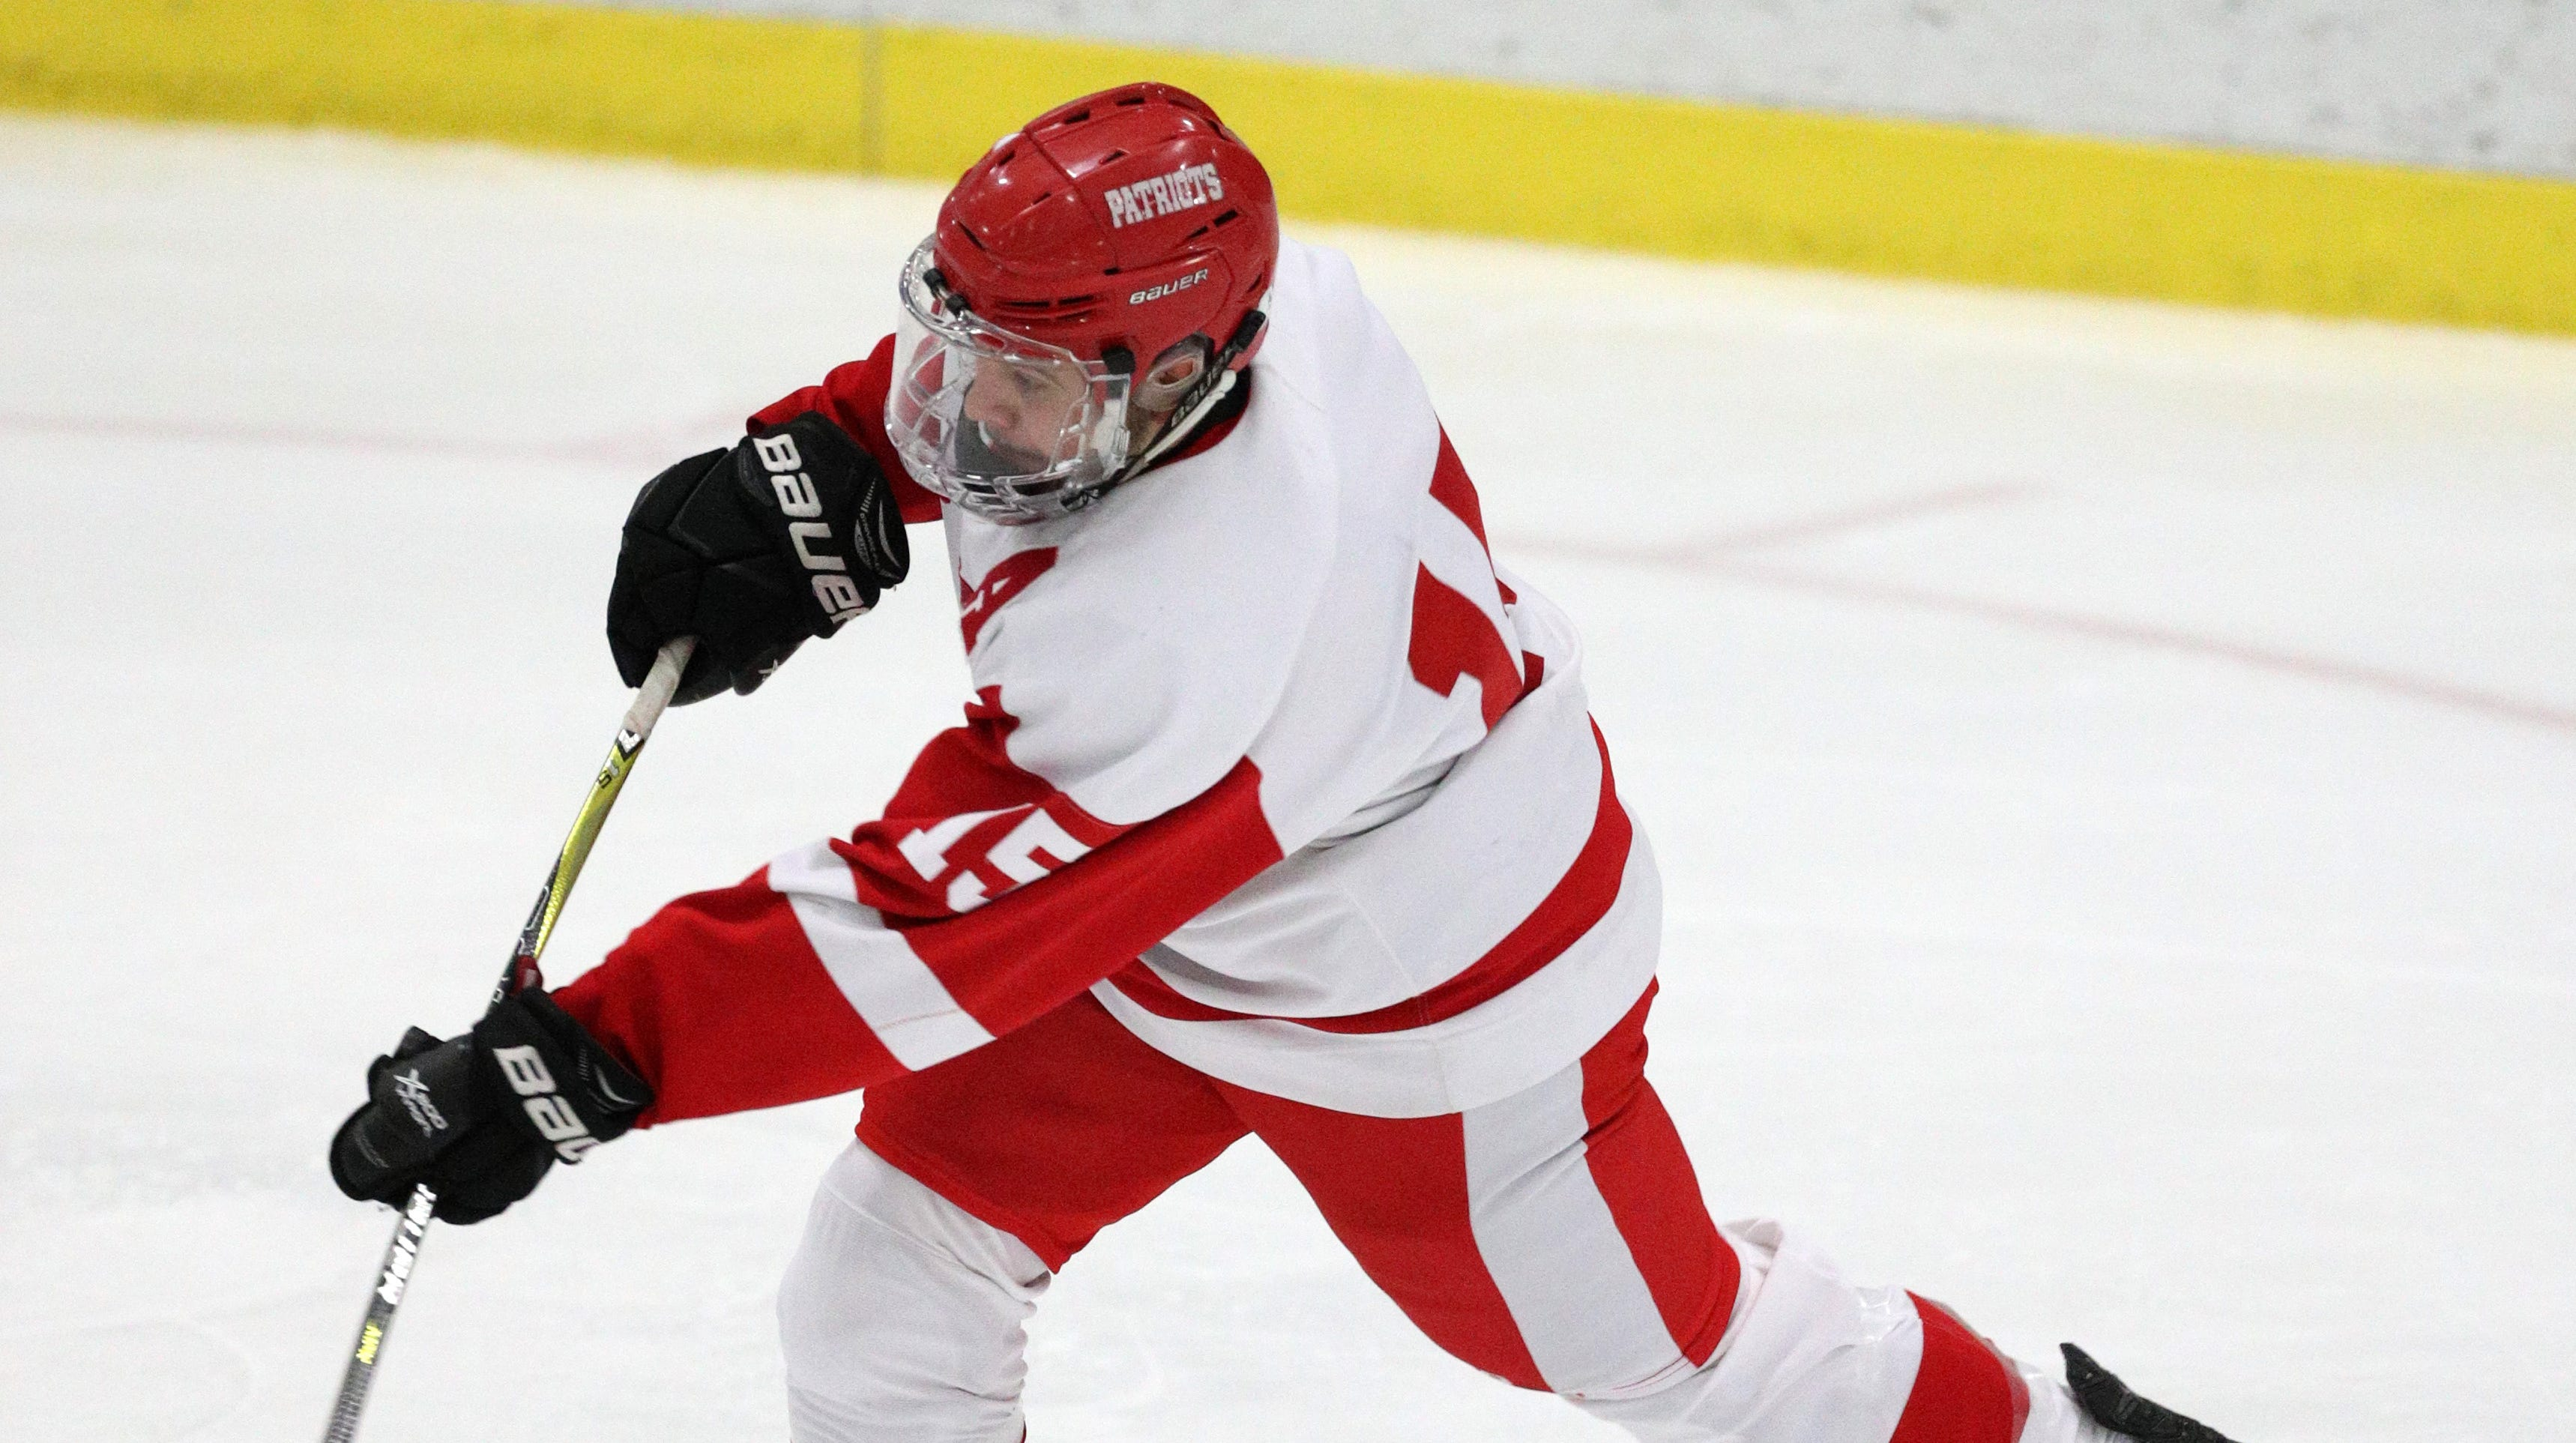 Bradley's game-winner in OT gives Penfield hockey win over Victor in Class A final rematch